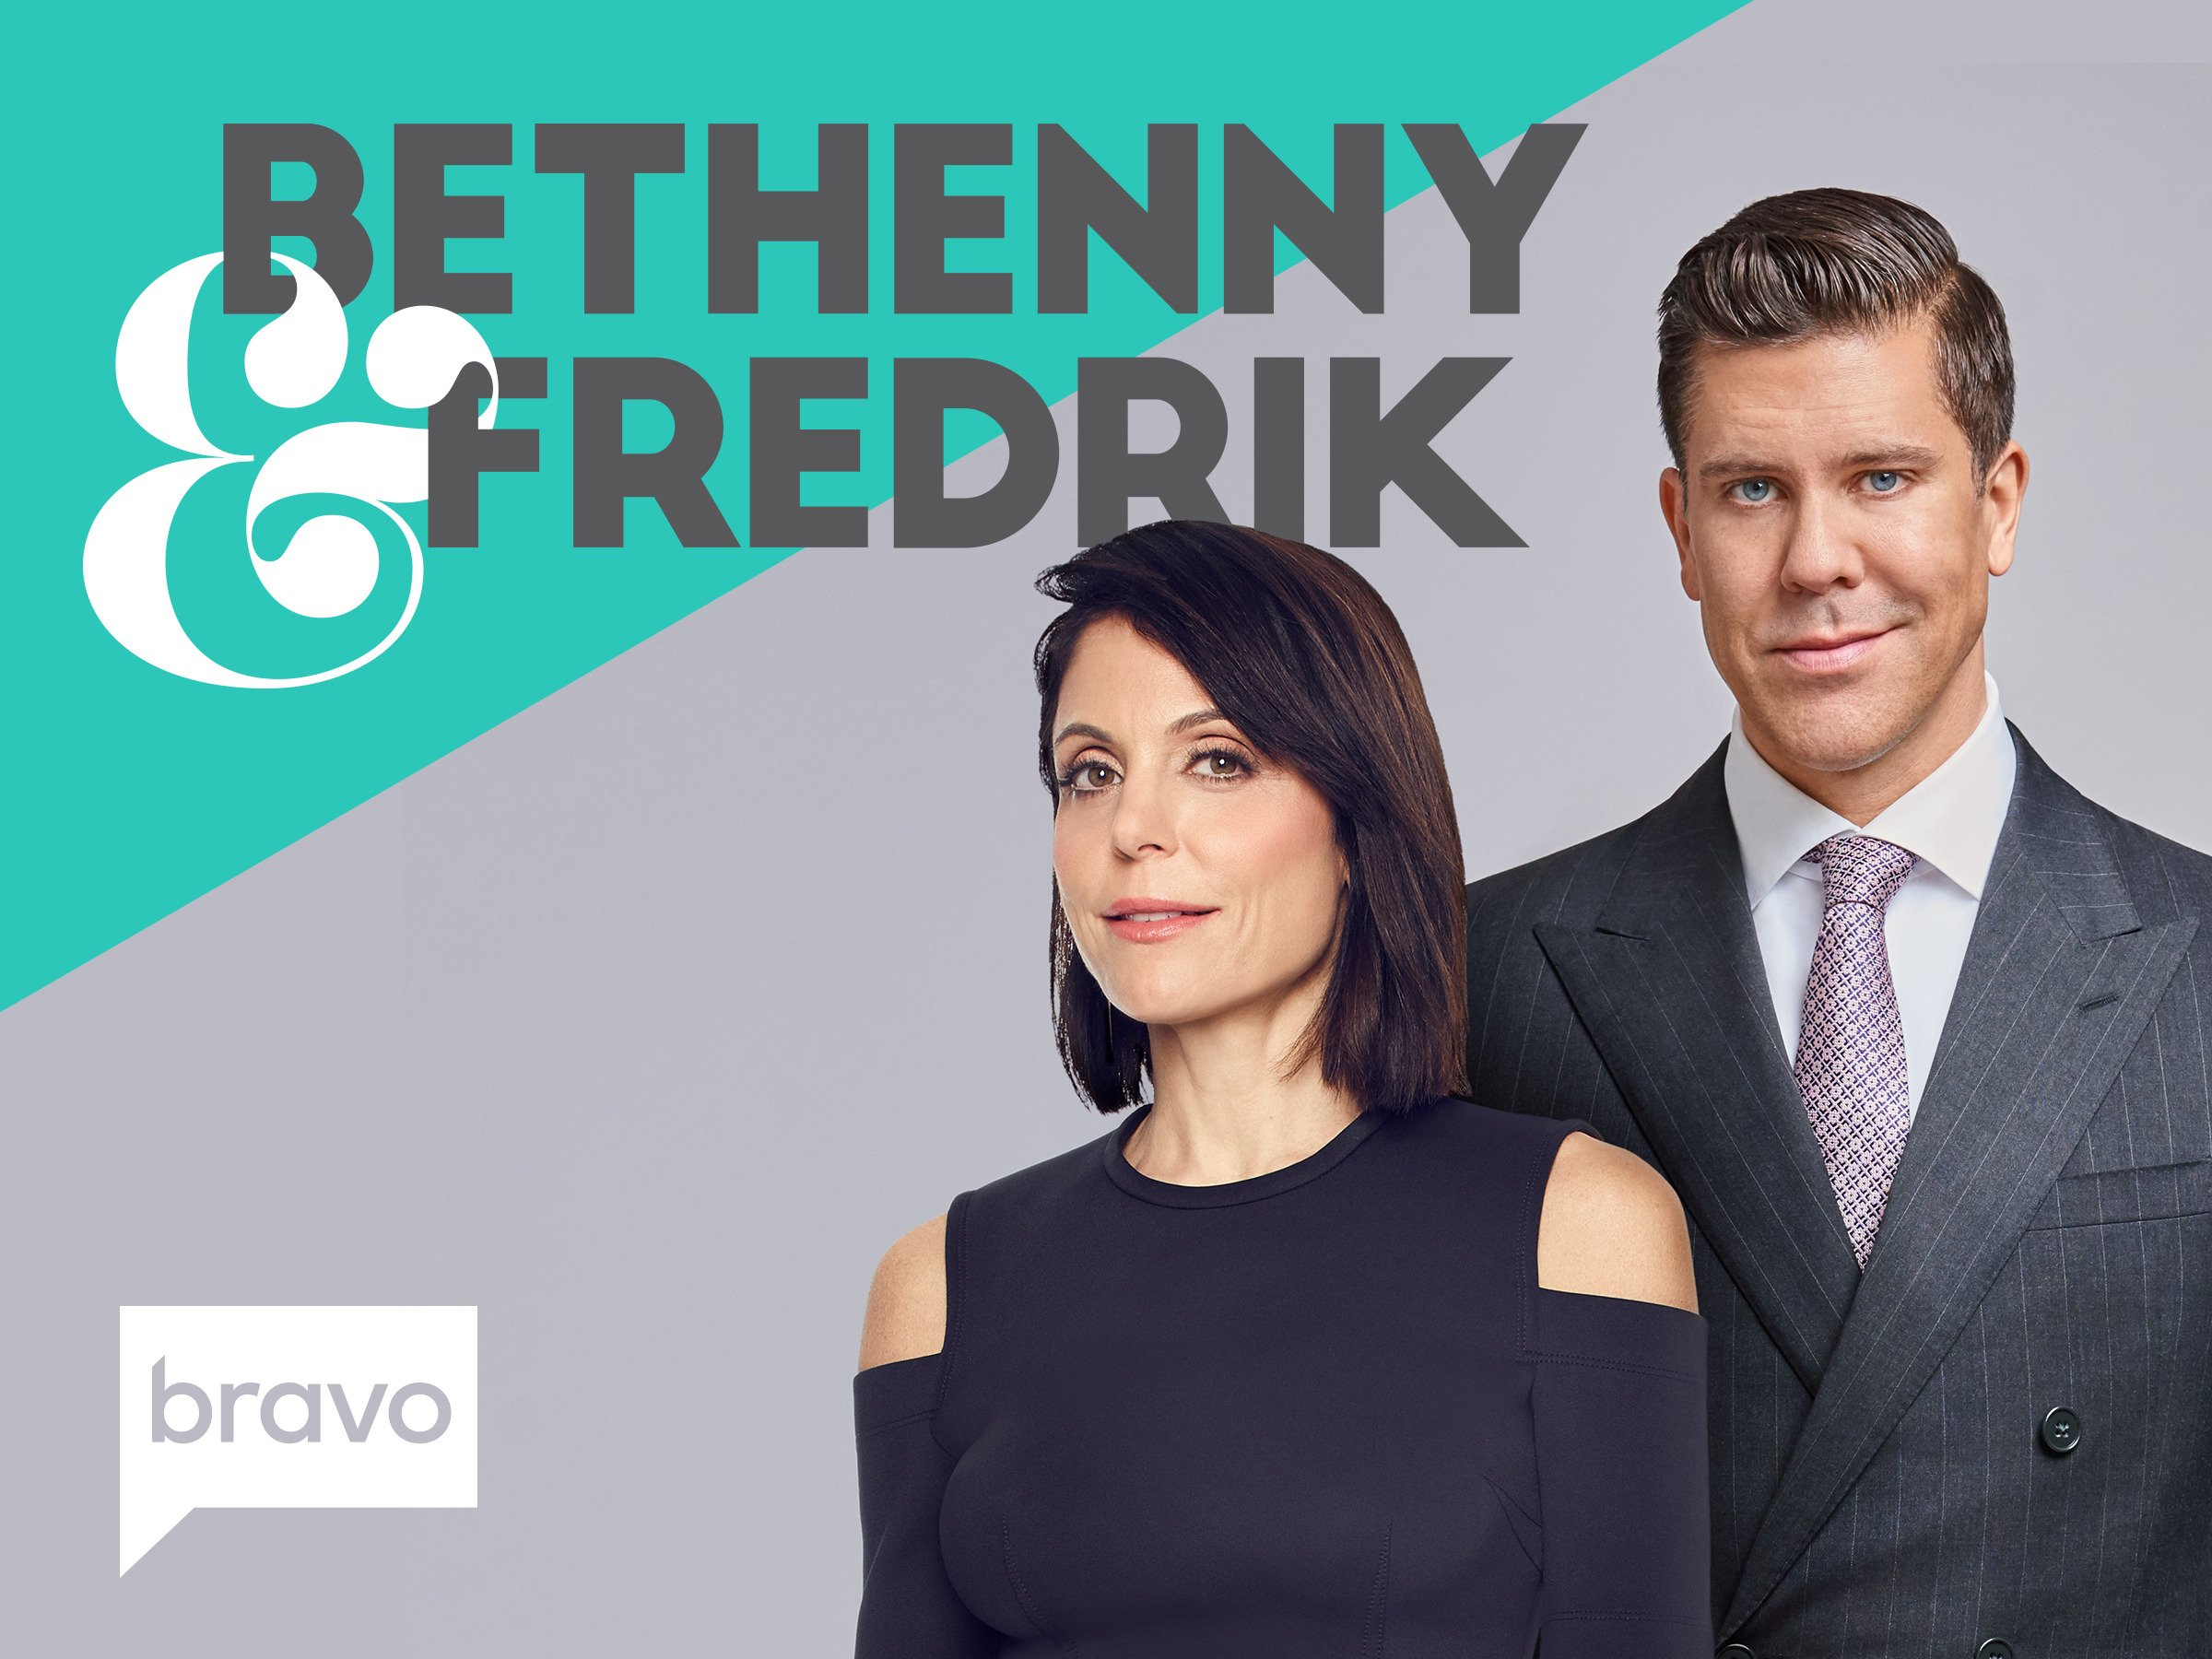 Amazon bethenny fredrik season 1 bethenny frankel fredrik amazon bethenny fredrik season 1 bethenny frankel fredrik eklund amazon digital services llc colourmoves Gallery